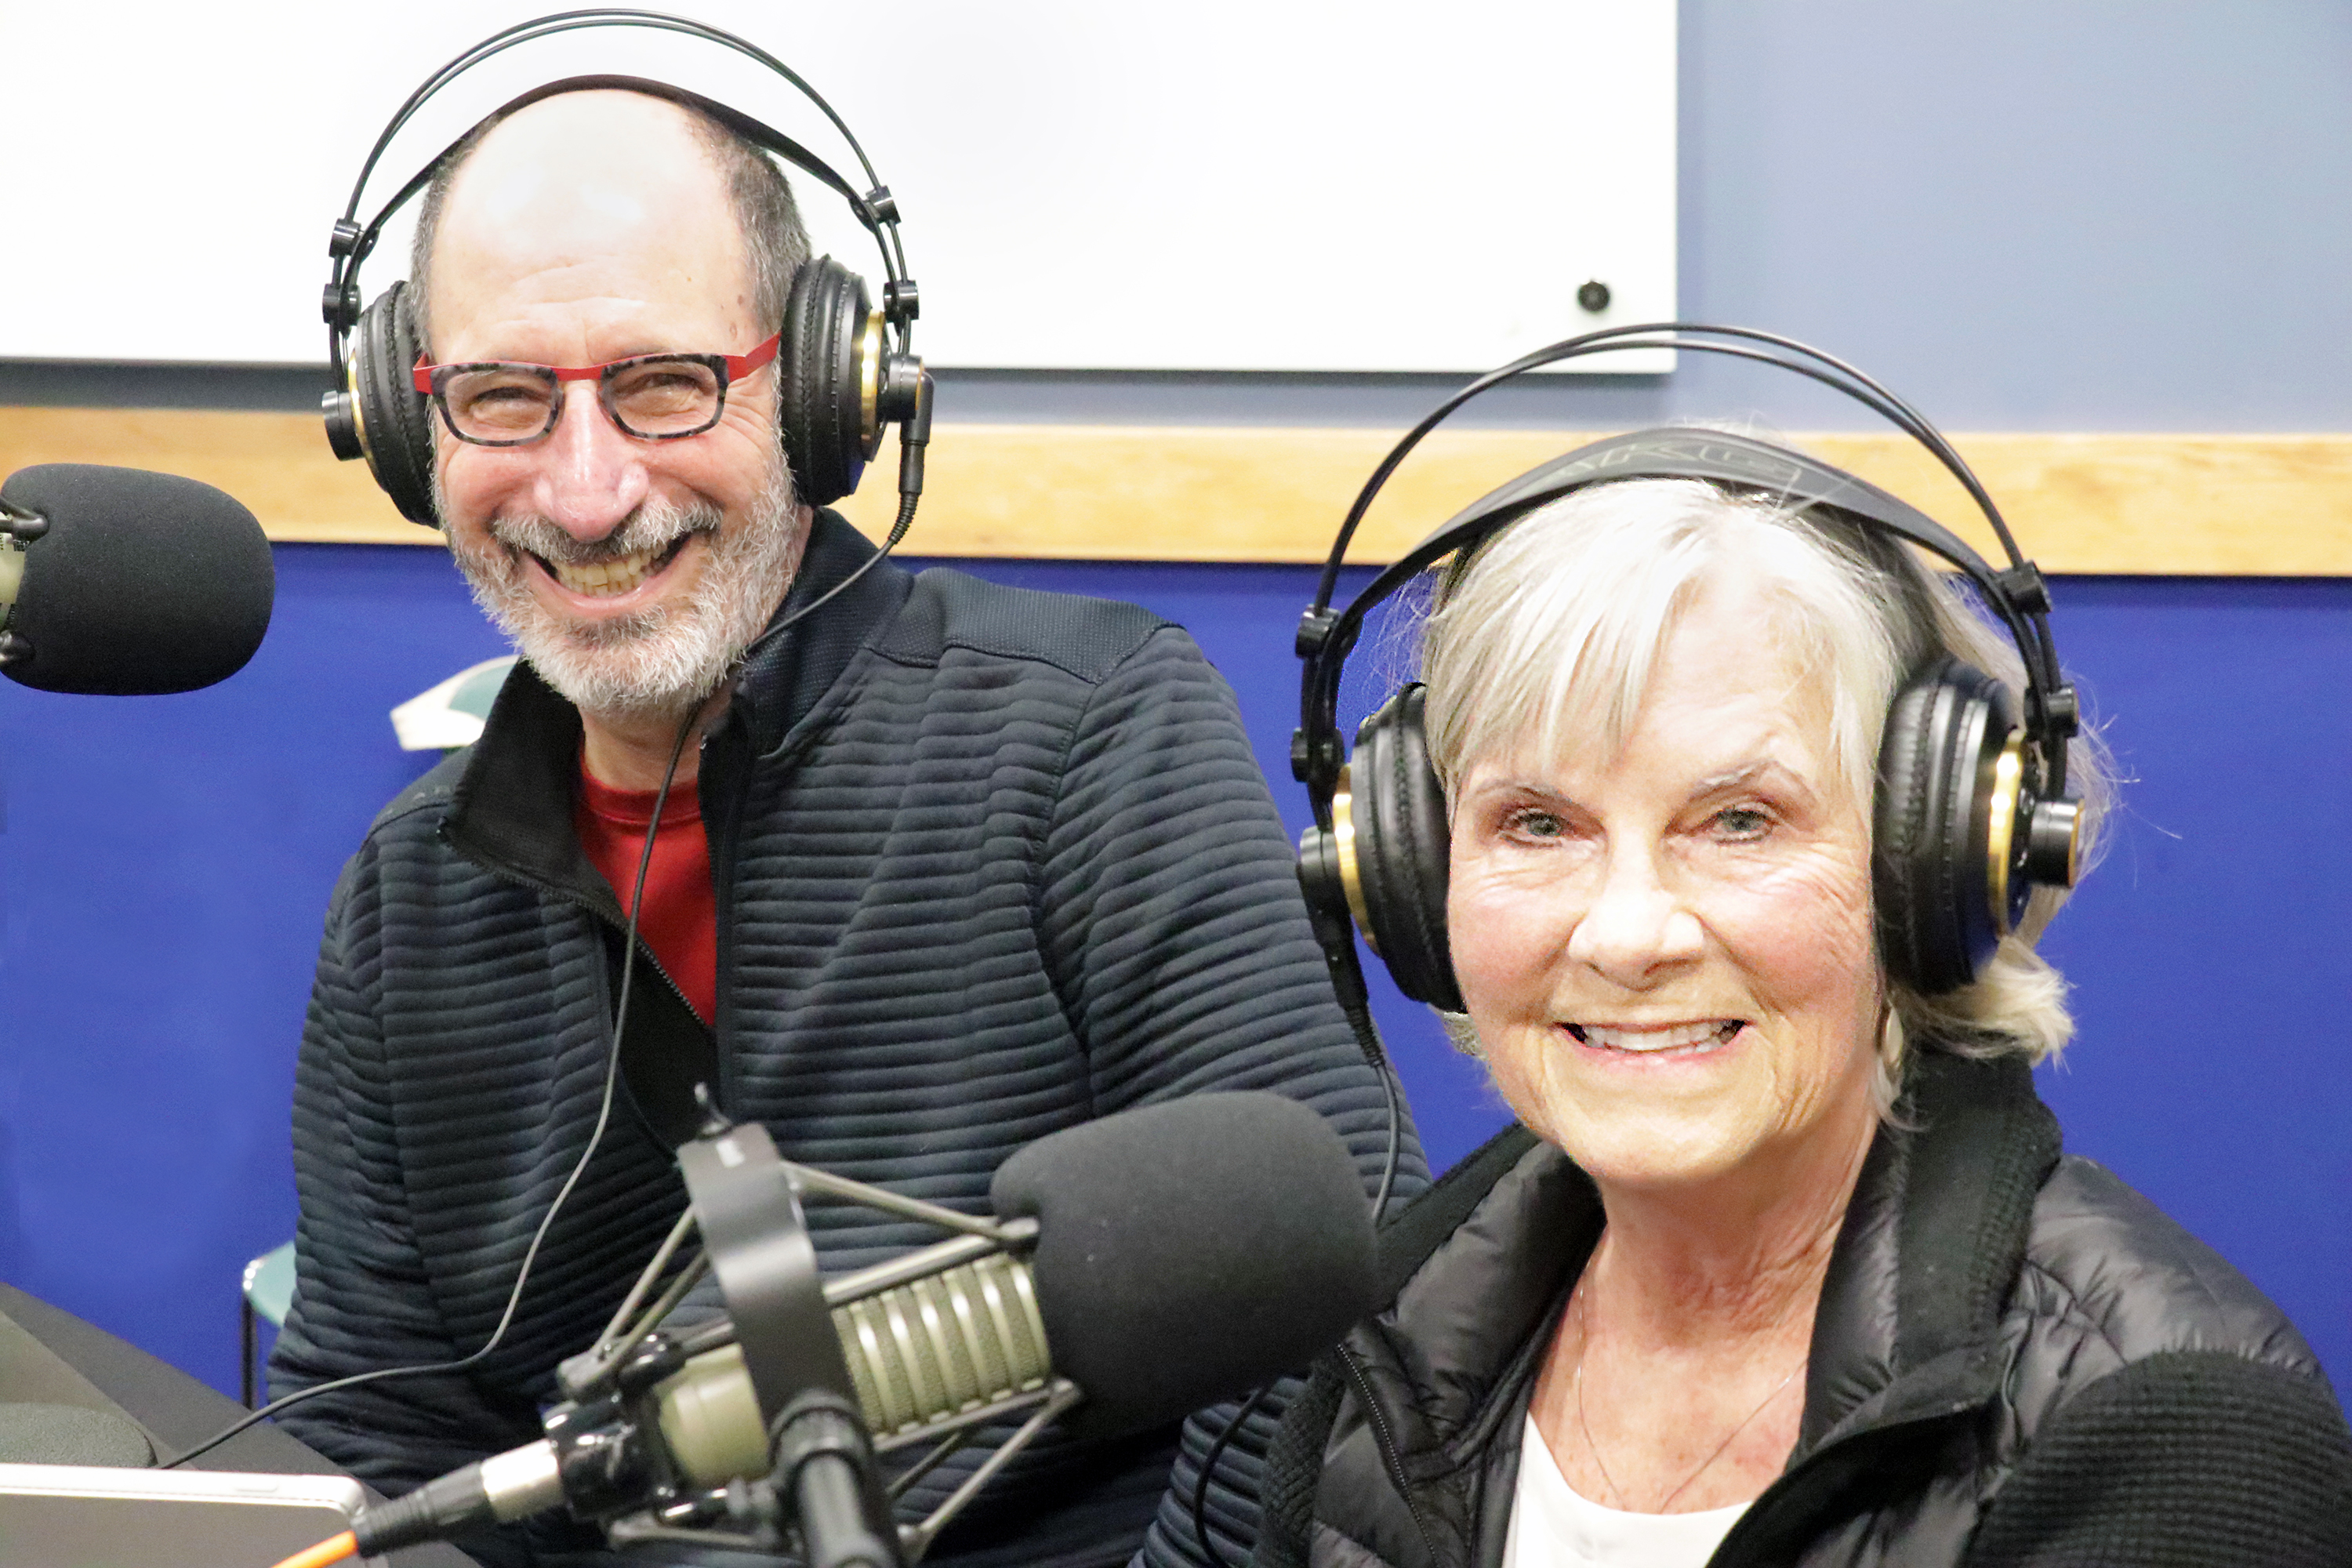 Documentary filmmakers Mike Rosen and Sharon Howard have traveled the world